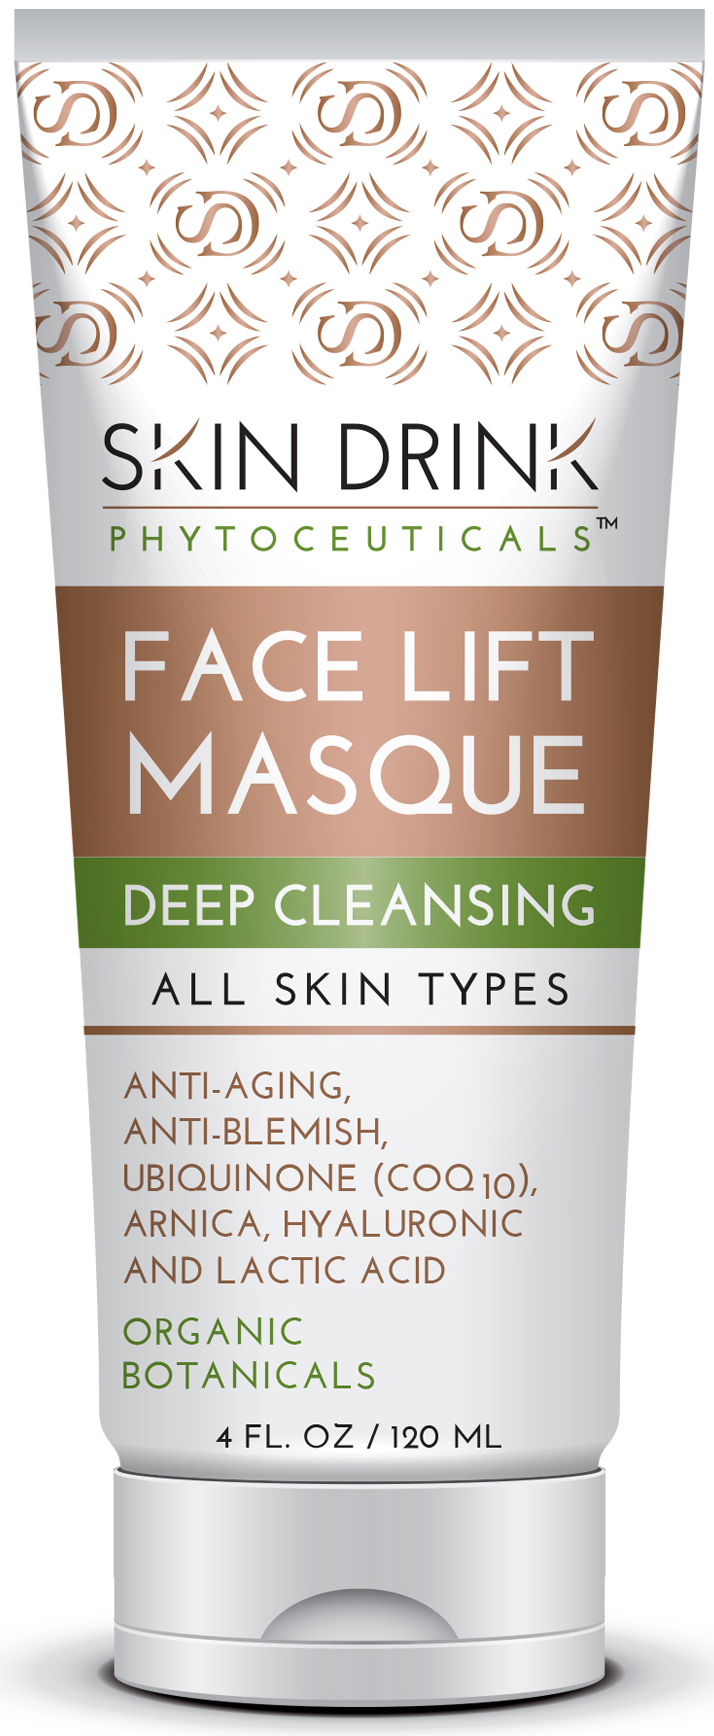 FaceLiftMasque_Front